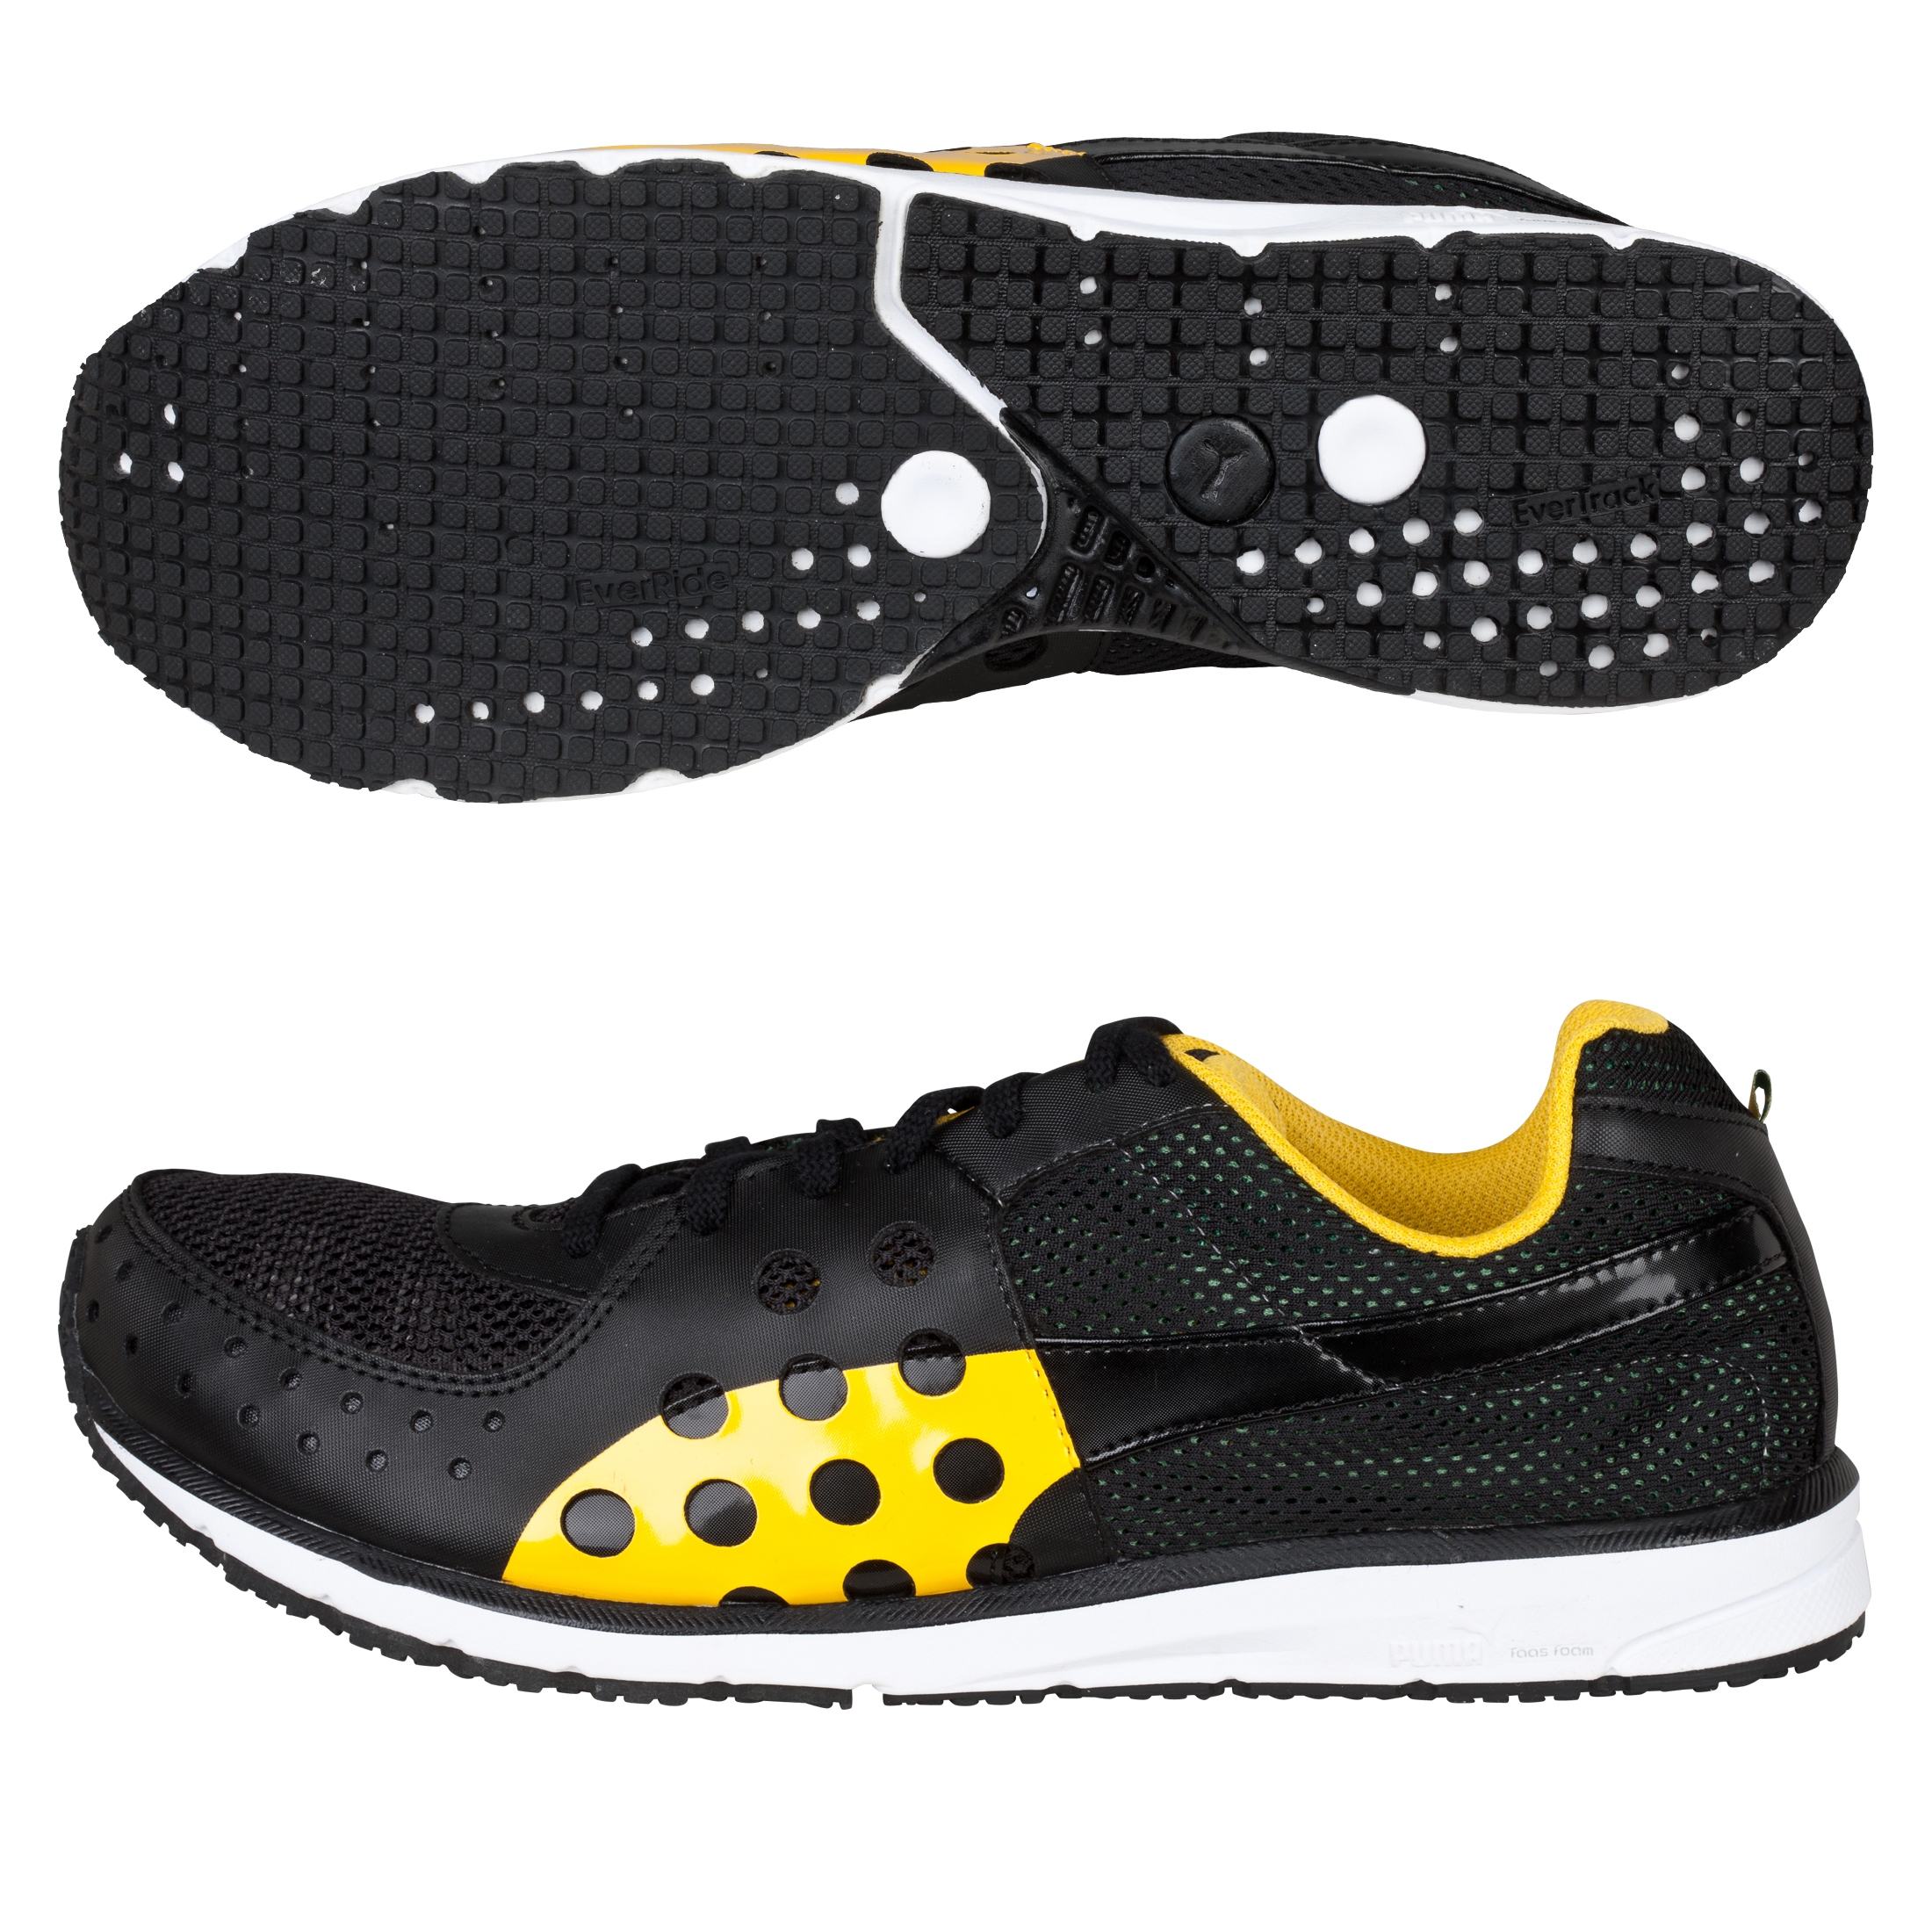 Puma Faas 300 JAM II Running Trainers - Black/Amazon/Spectra Yellow